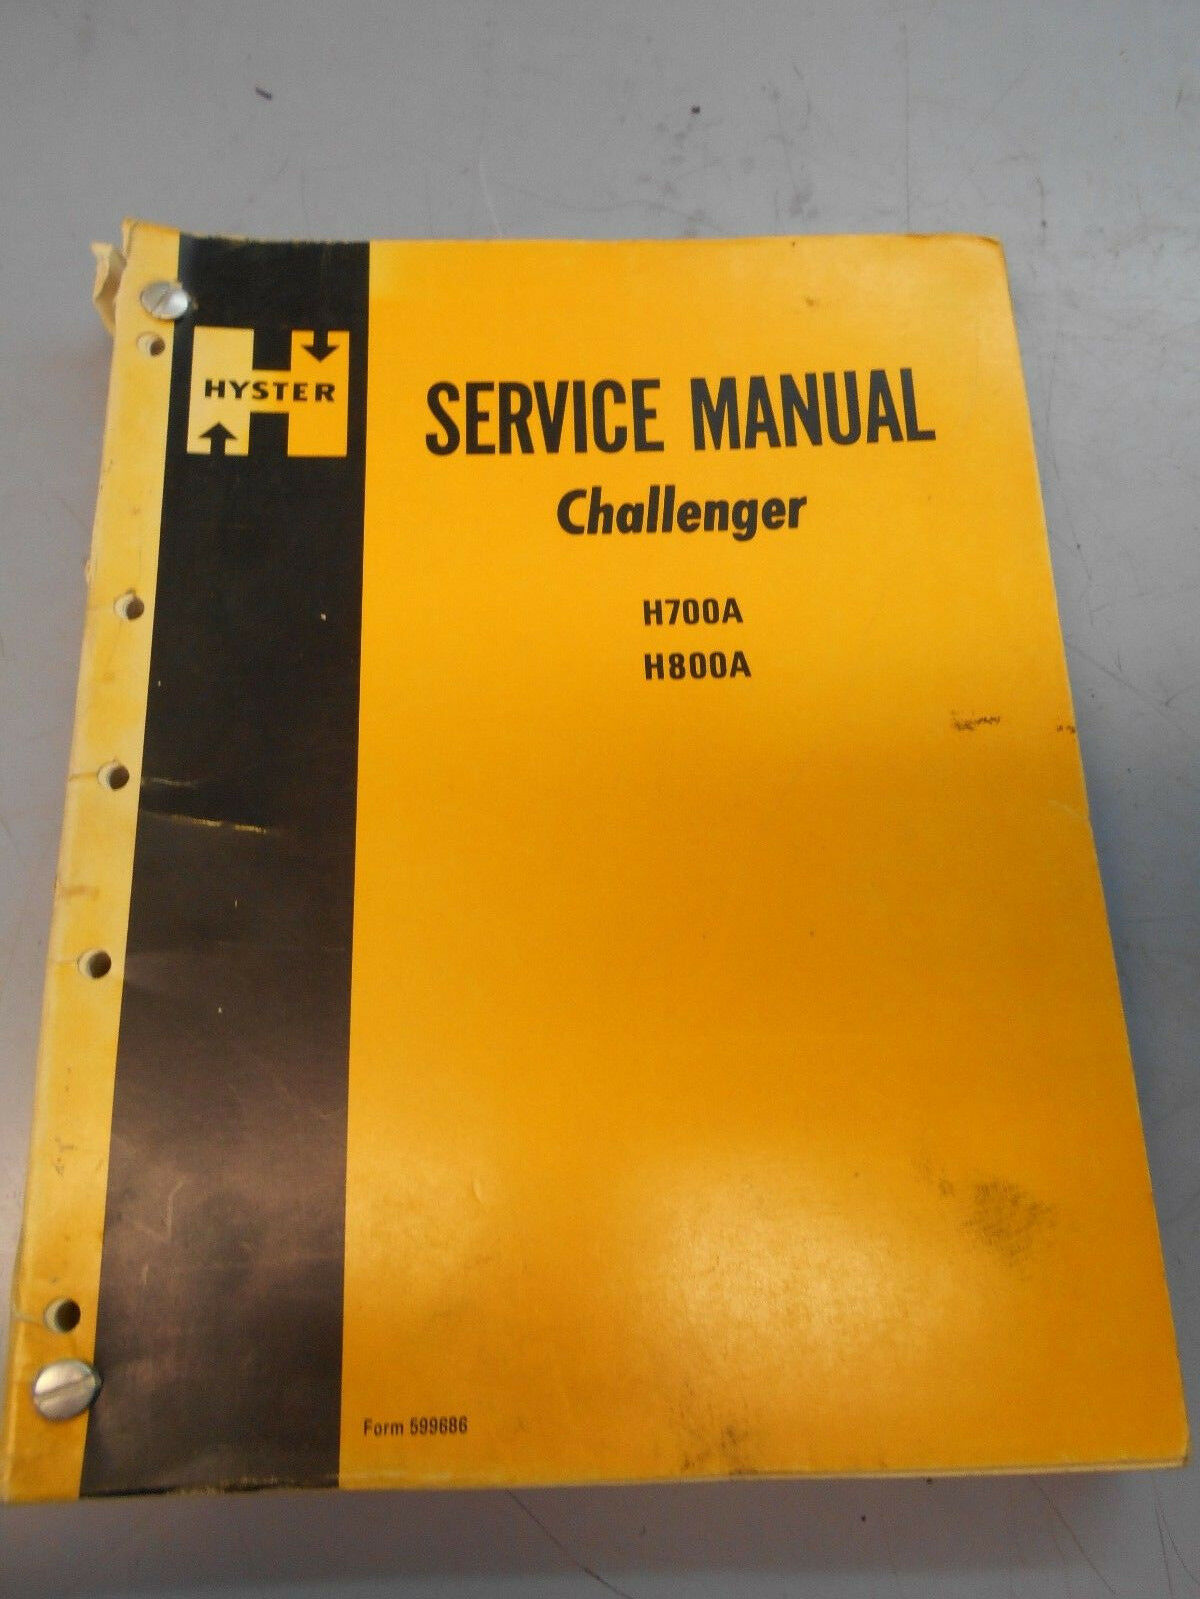 Hyster Forklift Service Manual - Challenger H700A, H800A 1 of 4Only 1  available ...